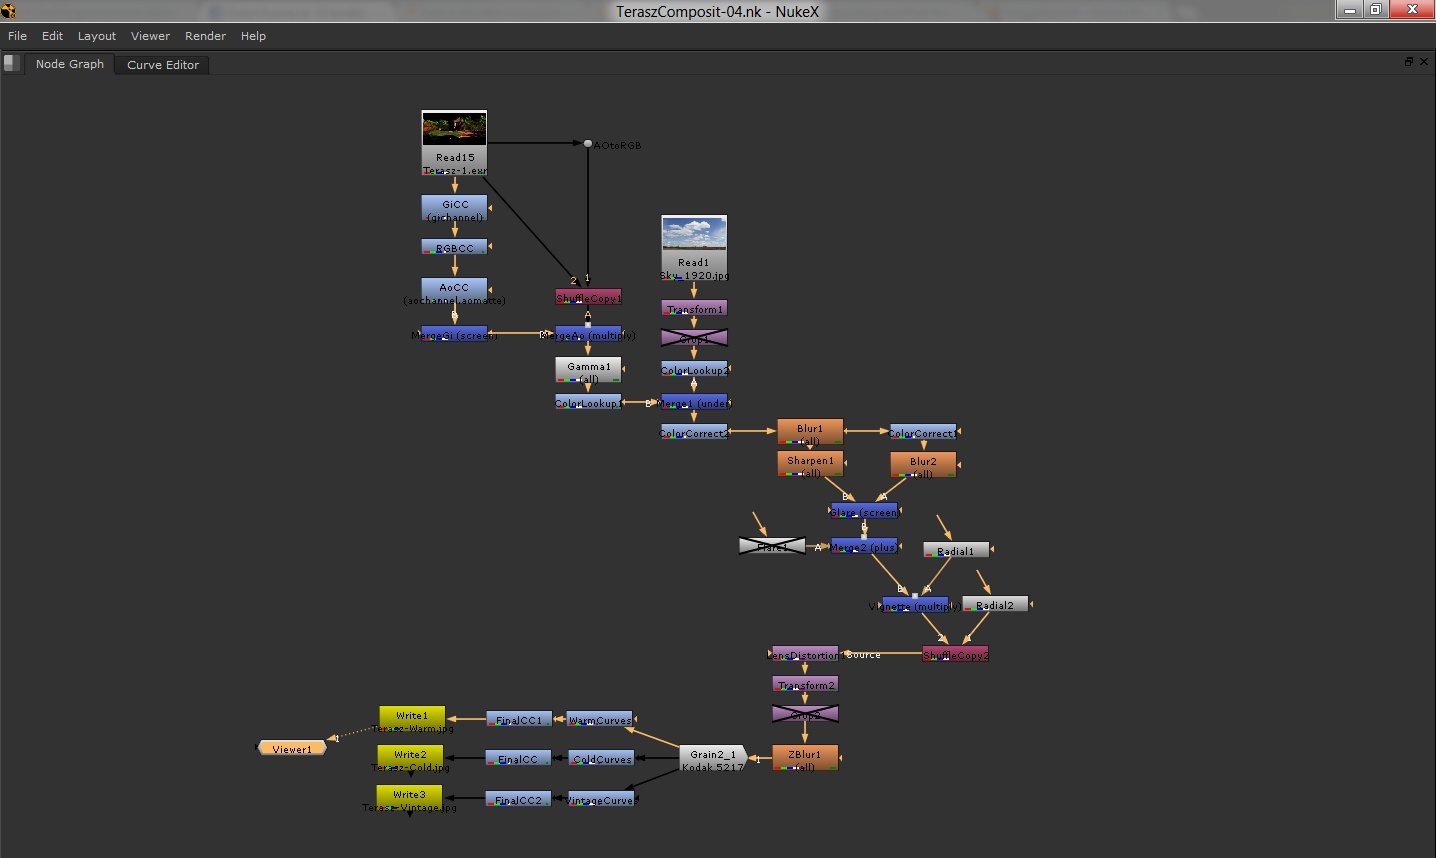 This is a node tree in Nuke.